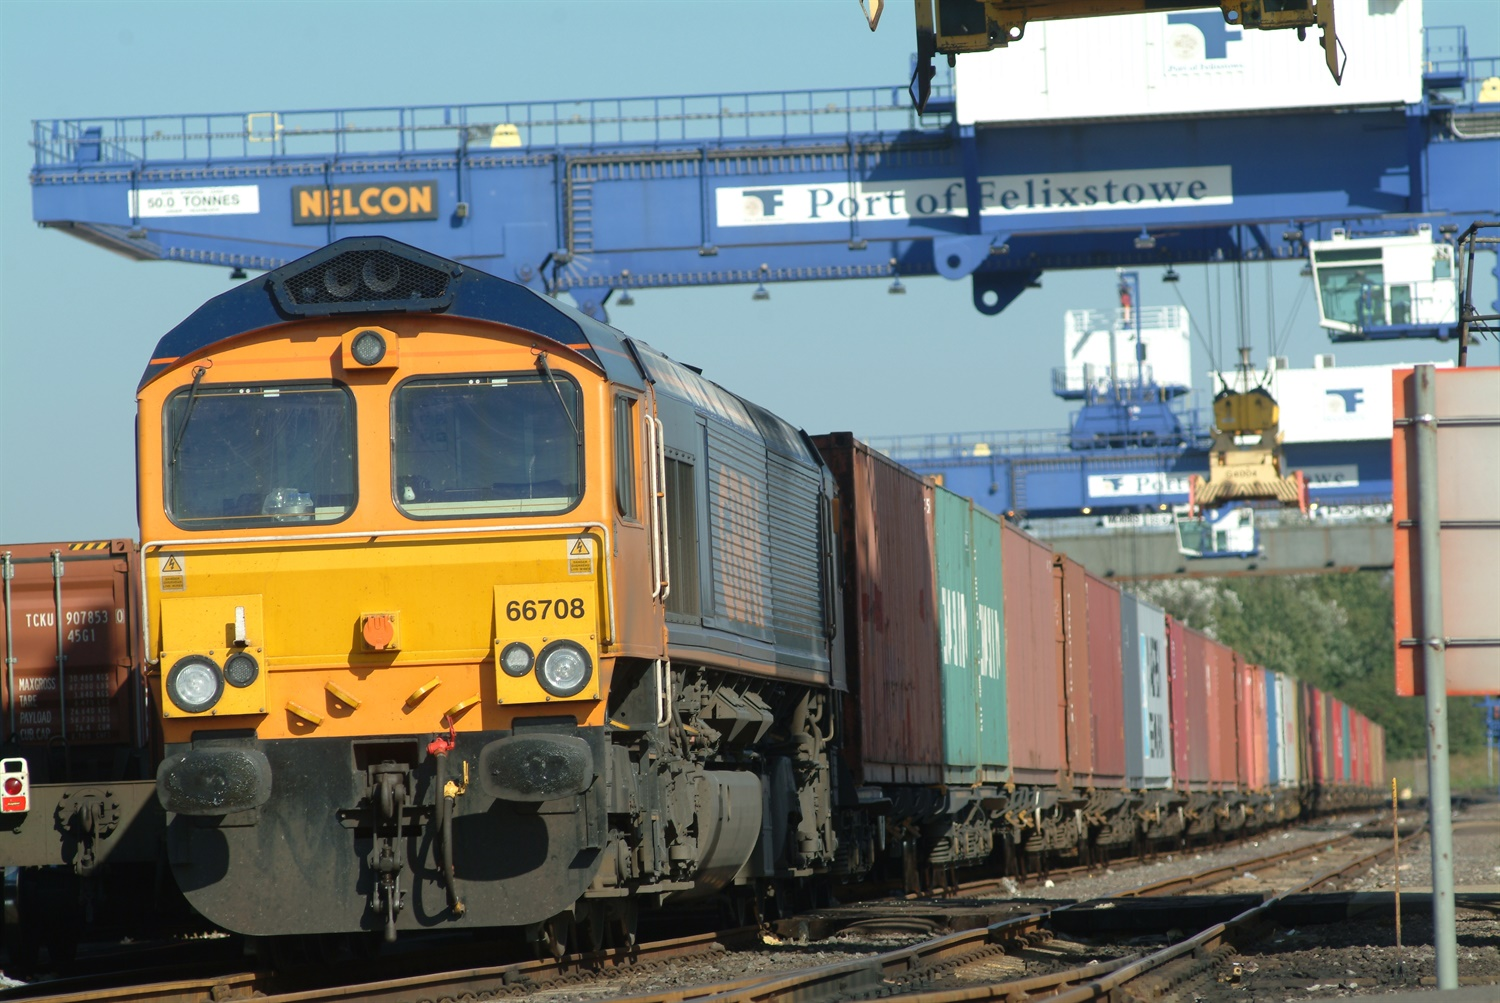 DfT approves £60m upgrade to Felixstowe branch line